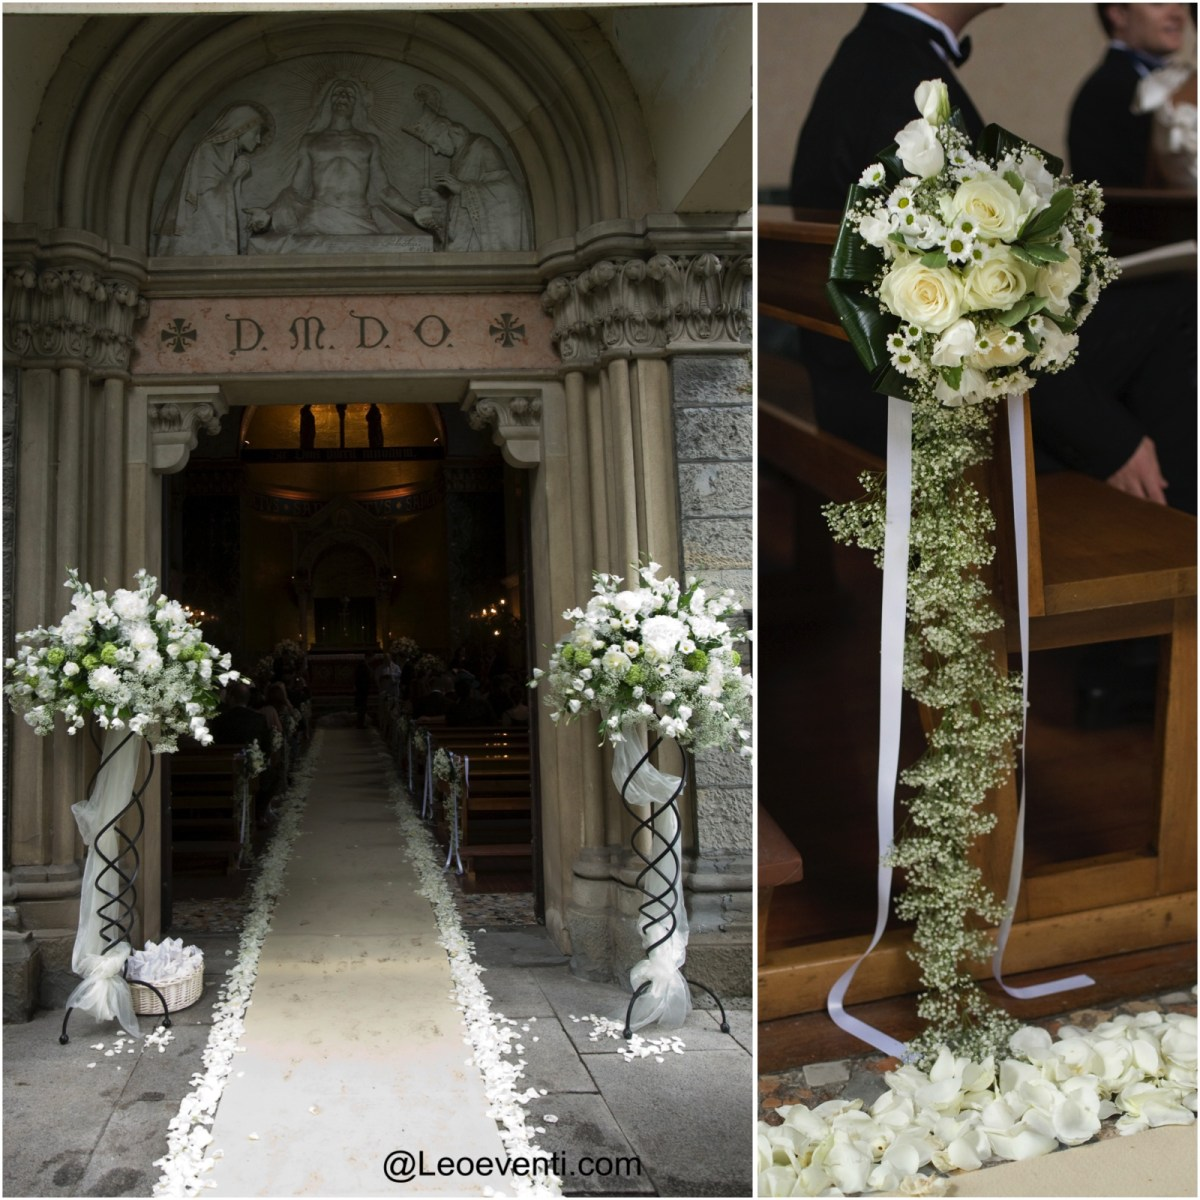 Wedding Flower Decorations Church Wedding Decorations Ideas For Your Wedding In Italy Leo Eventi